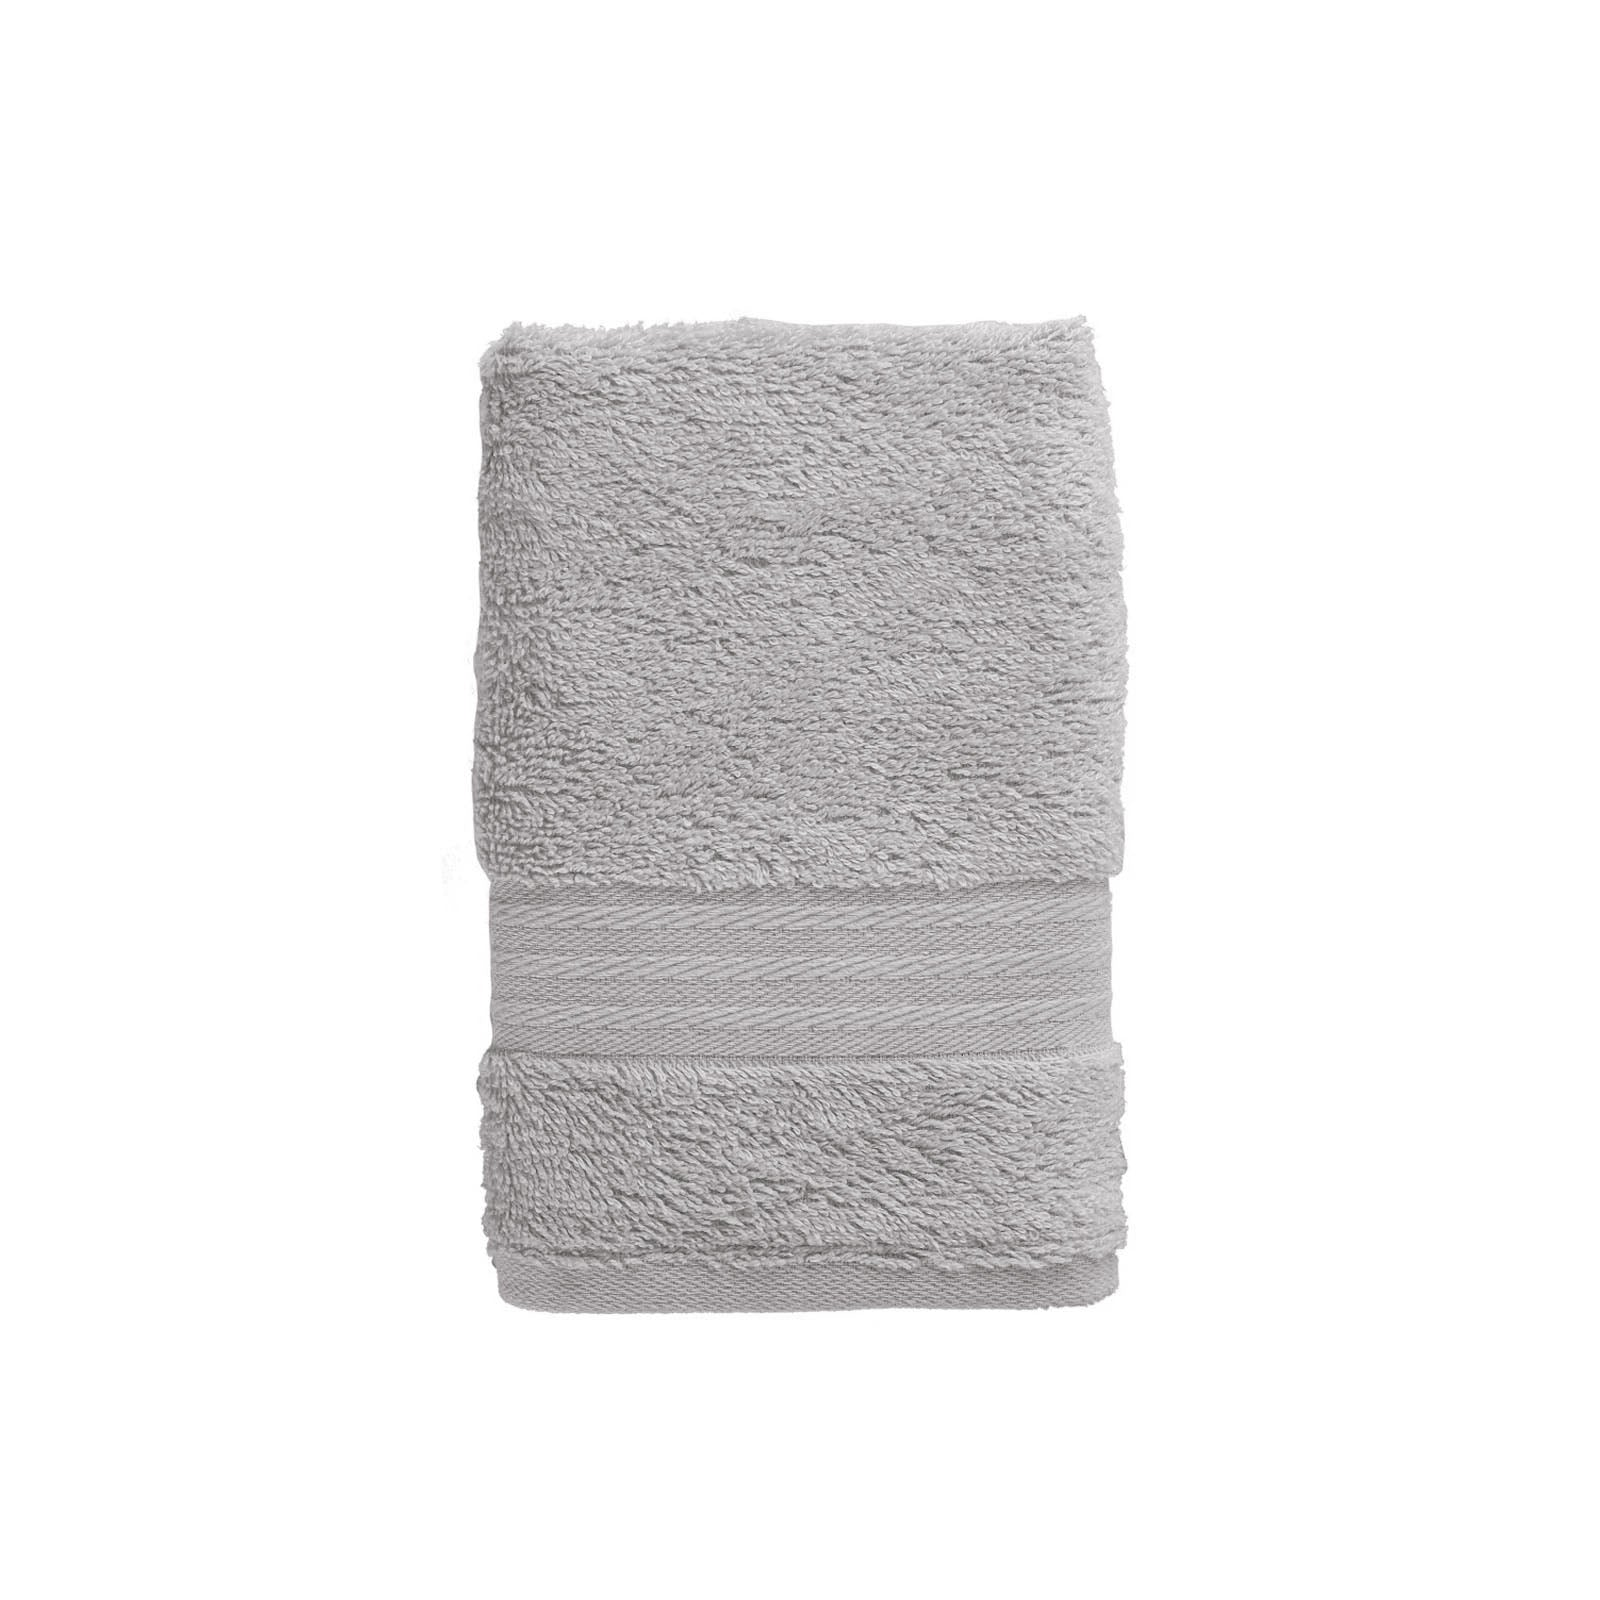 30X50 PURE SOFT  towel 200.05.01.0225 - ebarza